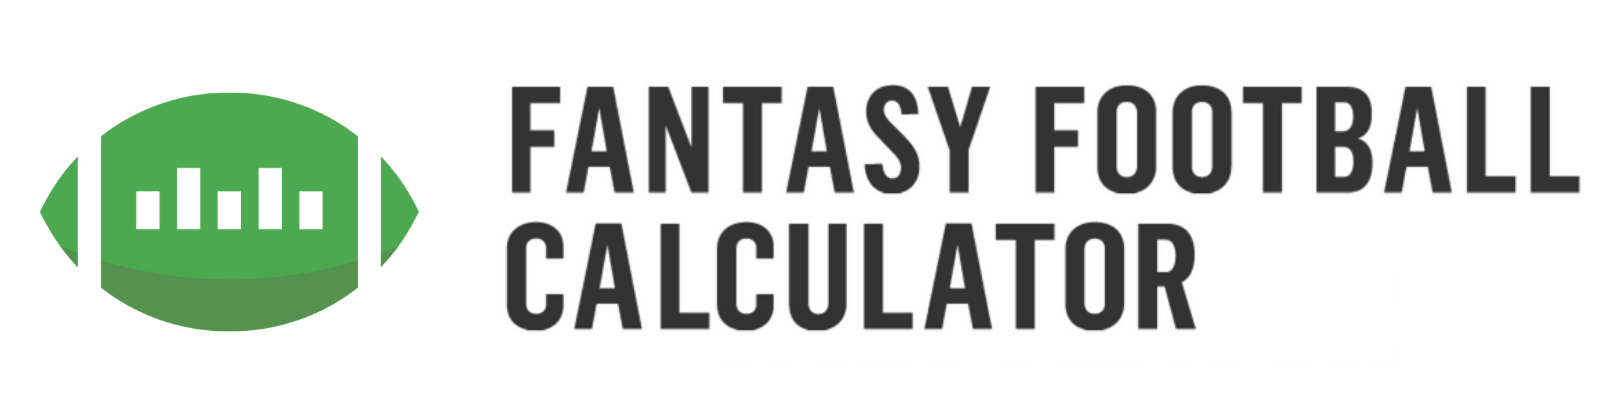 Fantasy Football Calculator